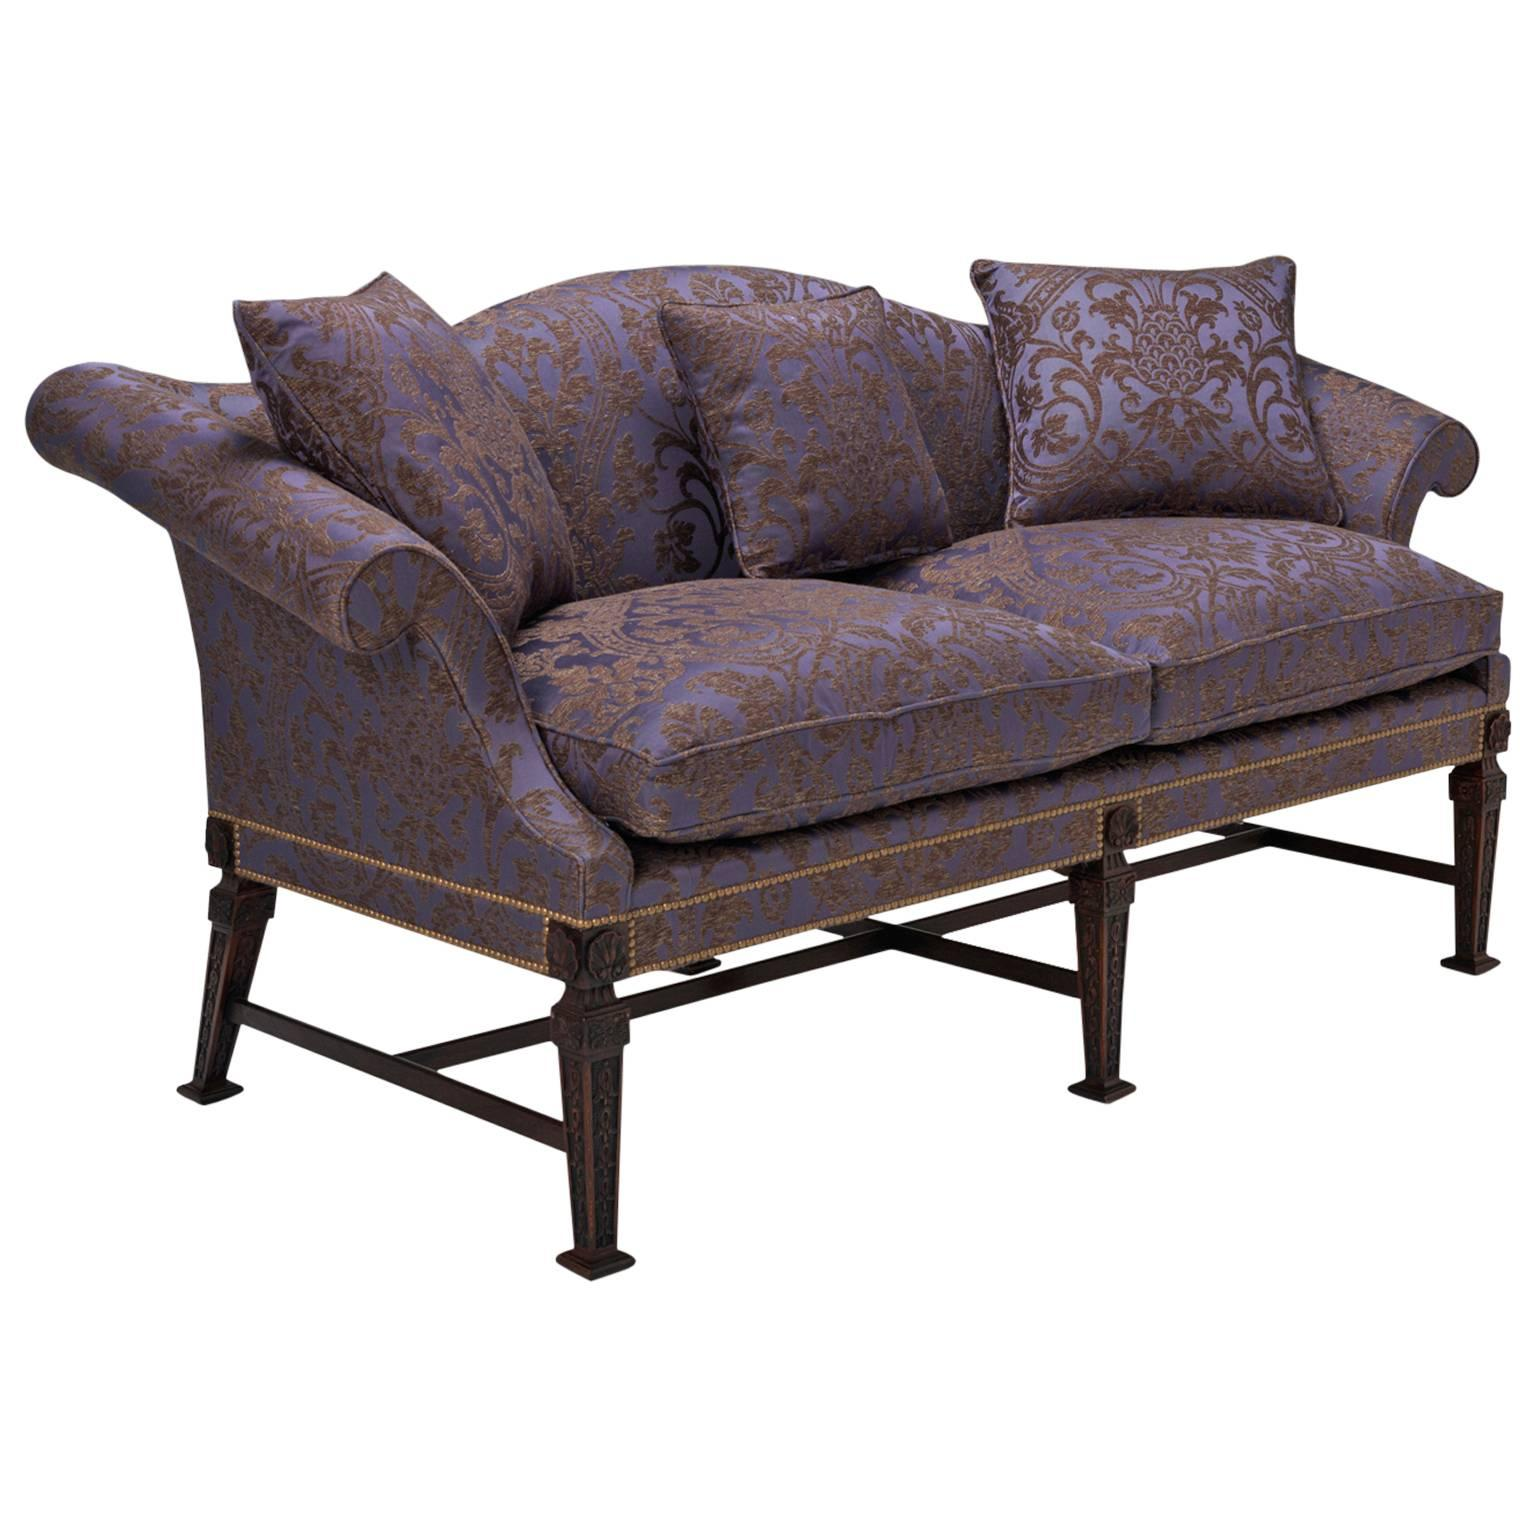 Sofa in the manner of William Kent